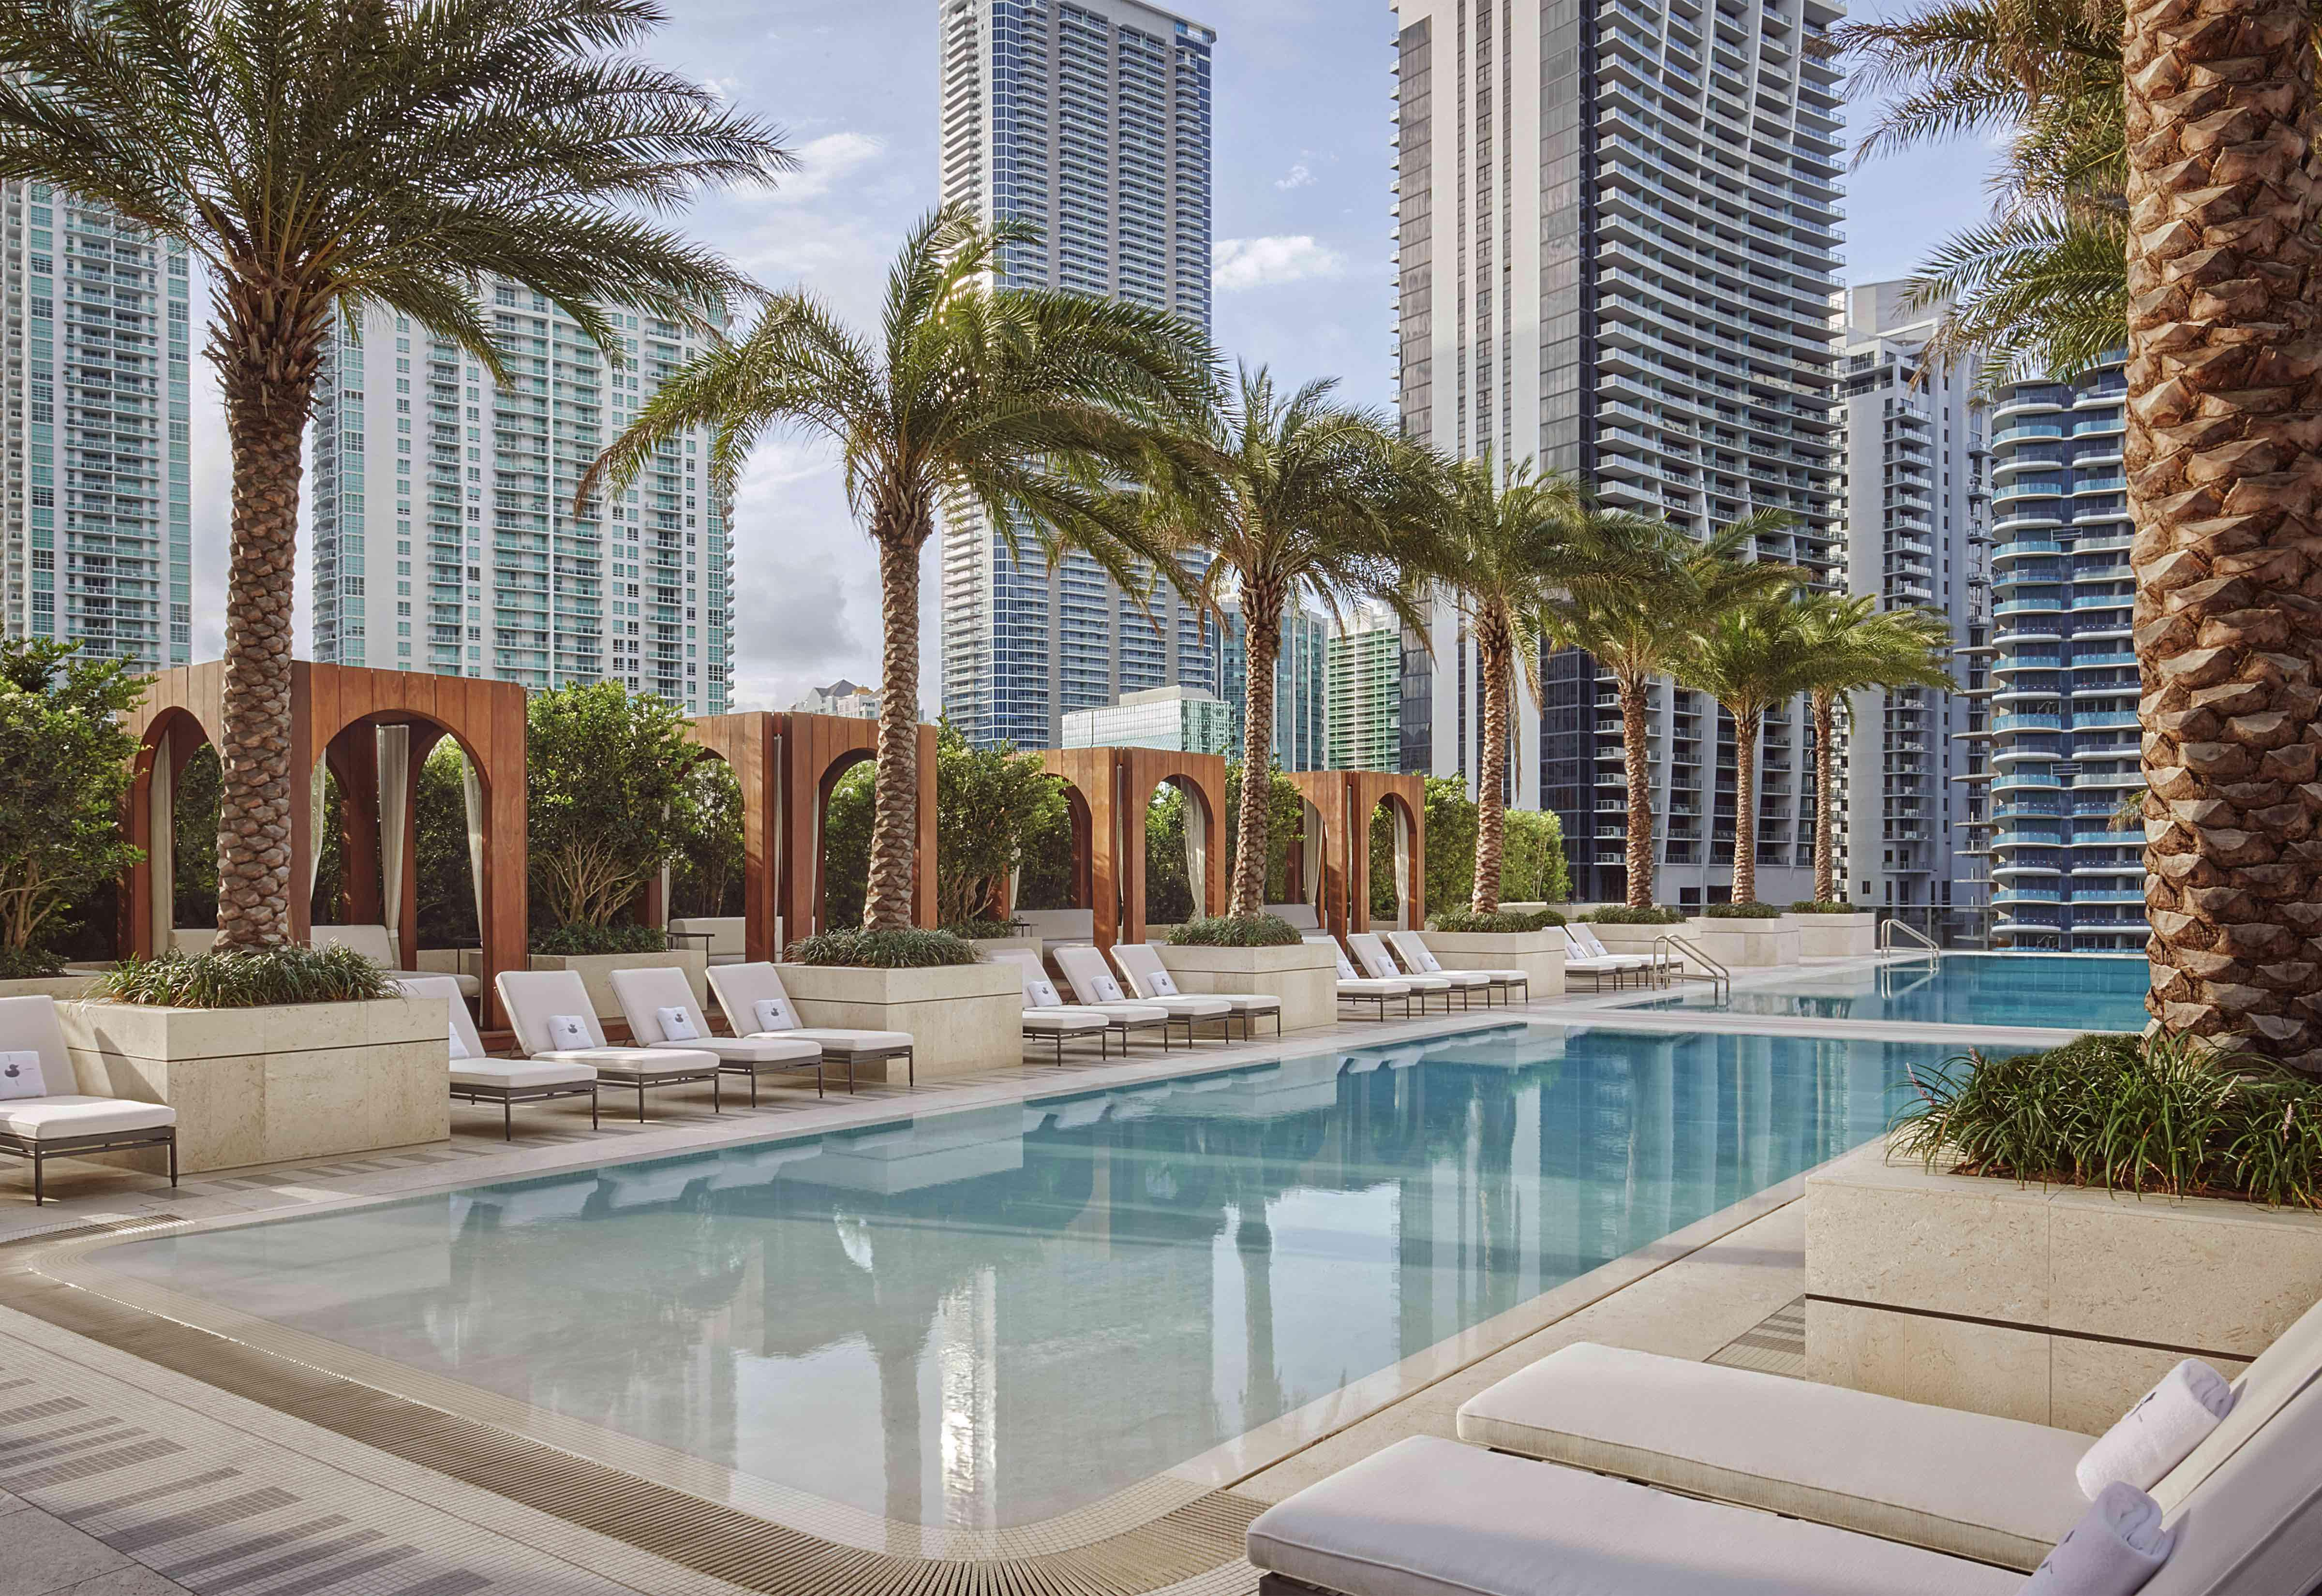 pool surrounded by white lounge chairs and palm trees